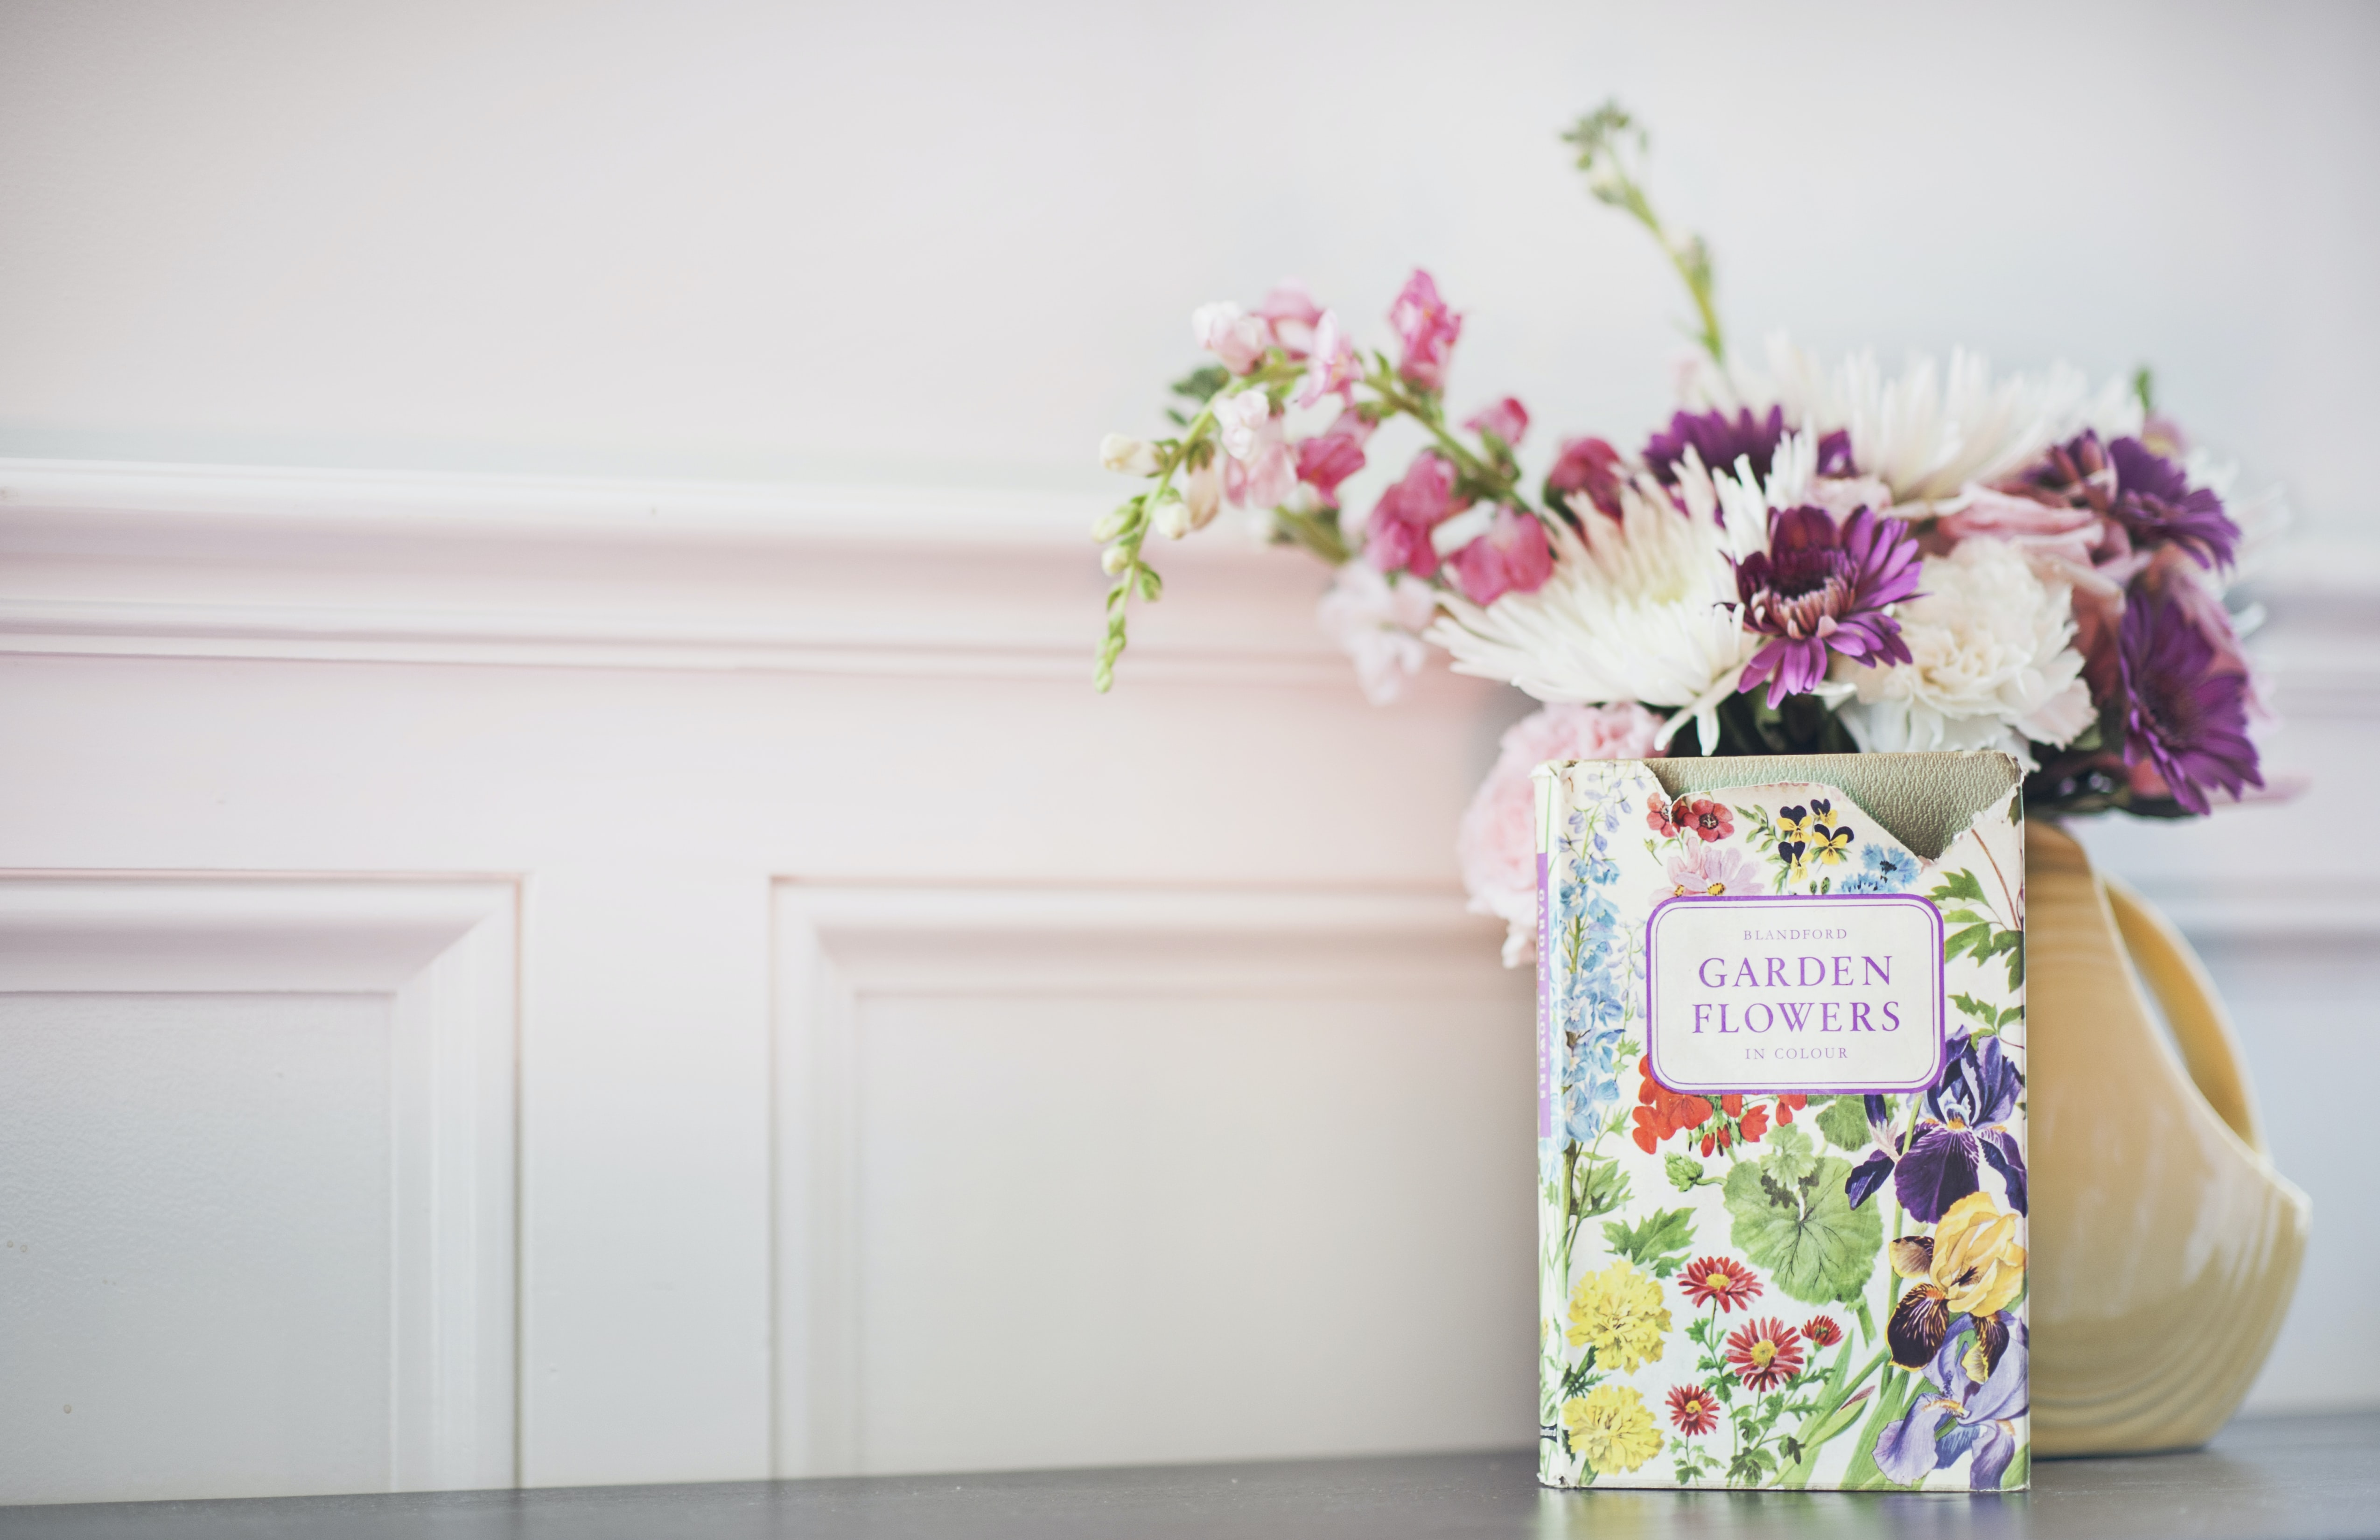 Garden Flowers book beside flower arrangement in vase